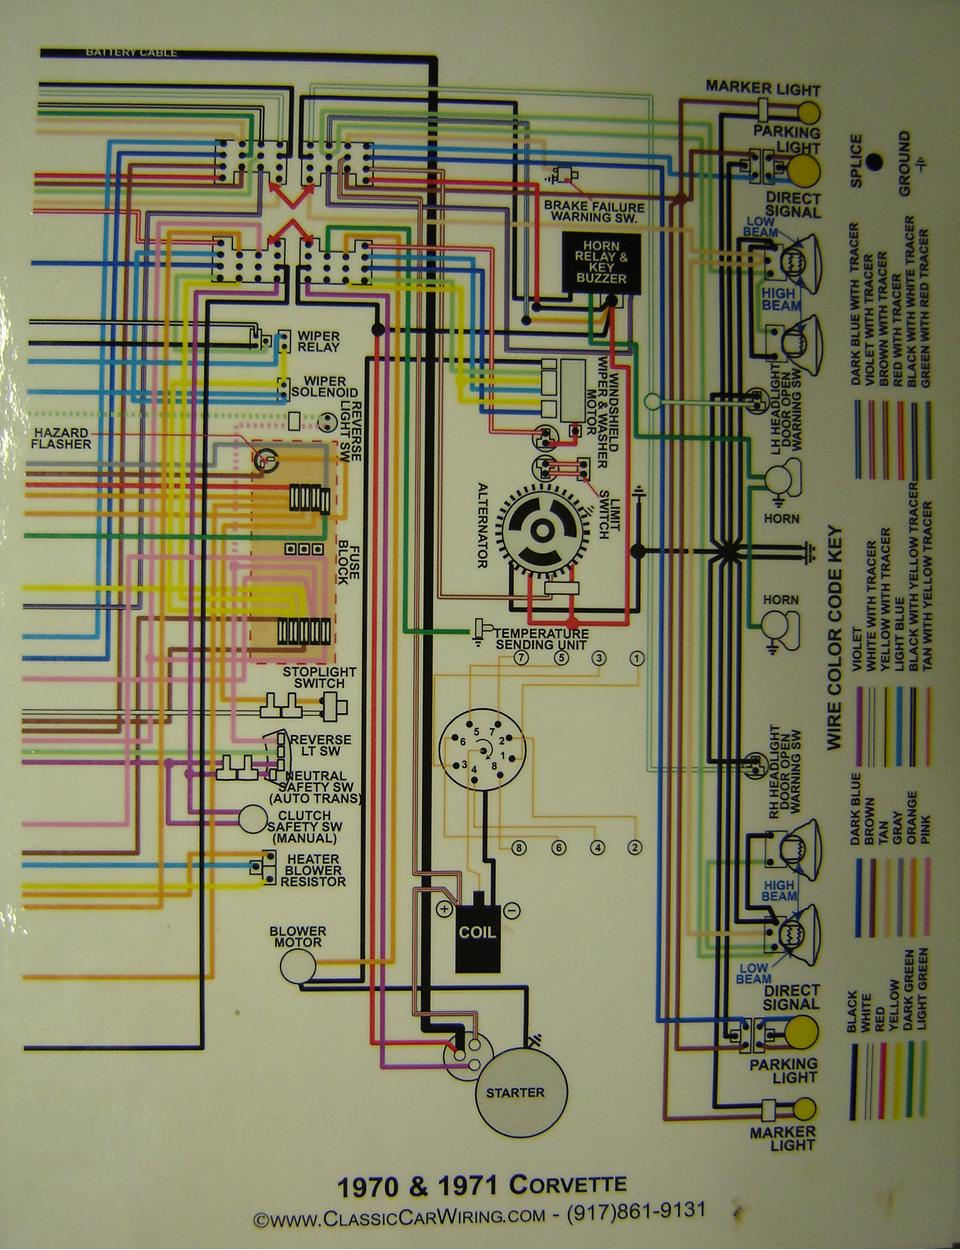 1970 71 corvette color wiring diagram B chevy diagrams 1989 corvette engine wiring harness at aneh.co